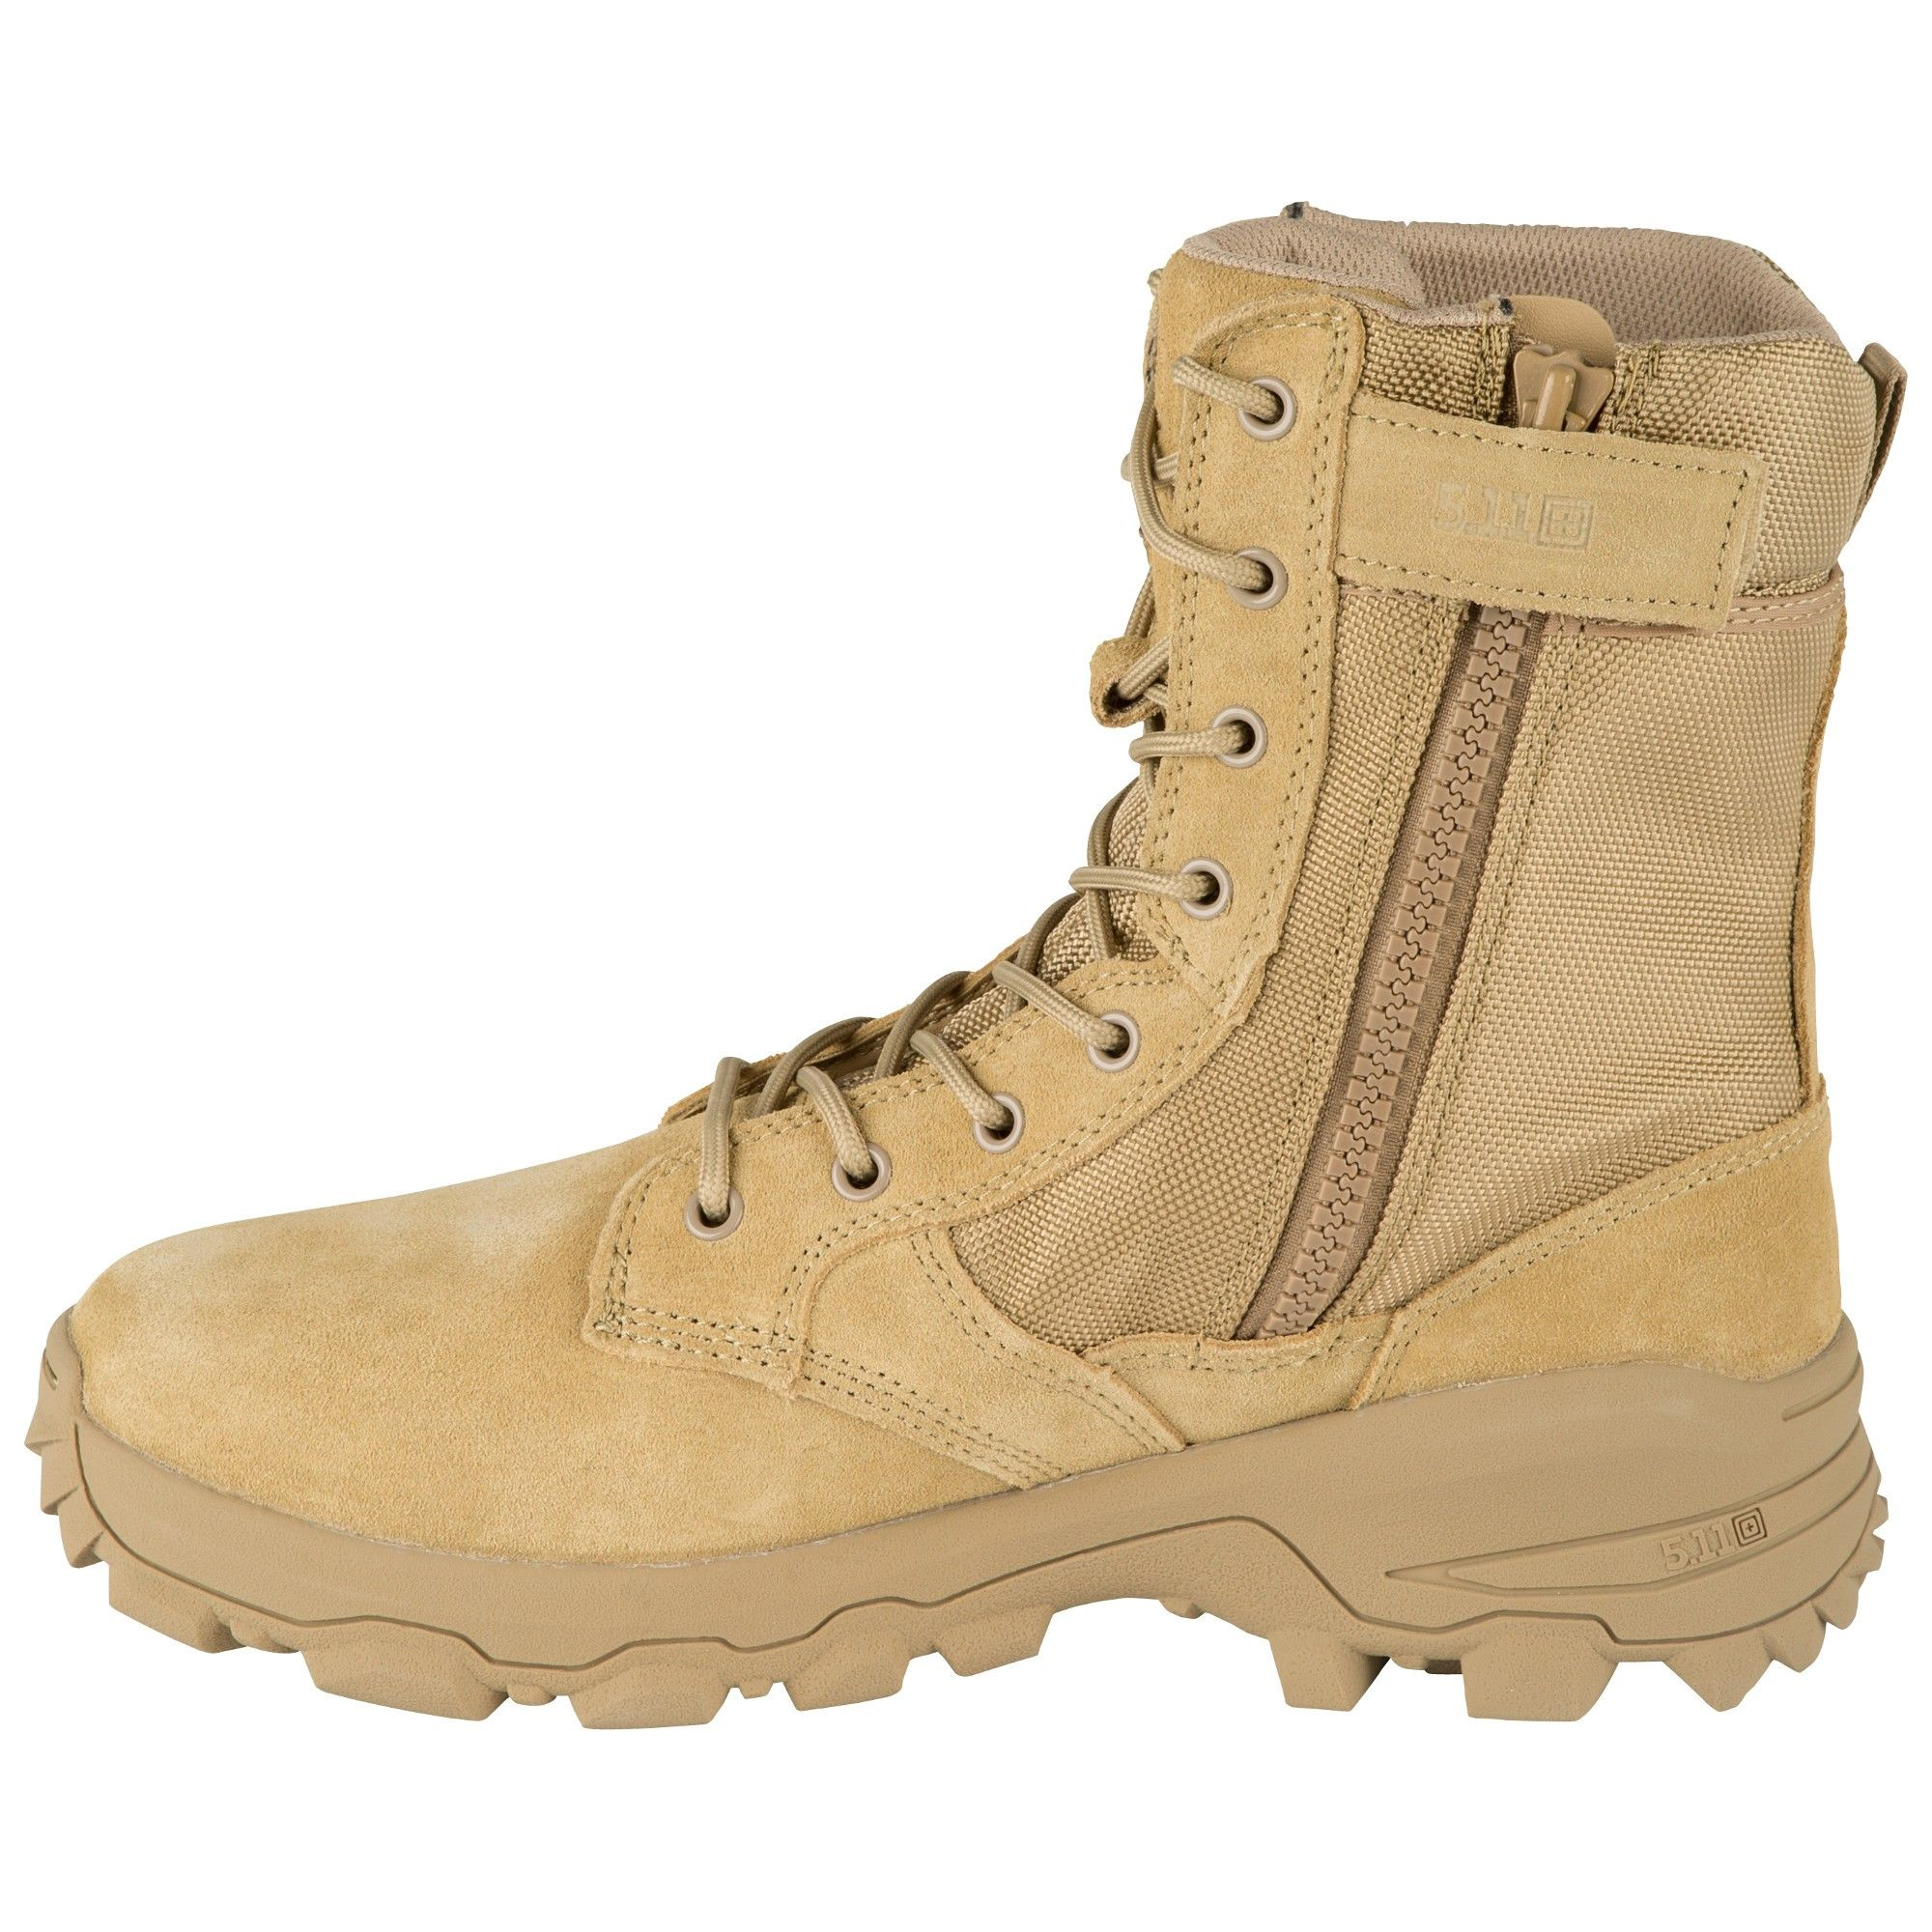 newest 716a6 73590 Speed 3.0 Coyote Sidezip Boot | Shoes | Boots, Desert boots ...